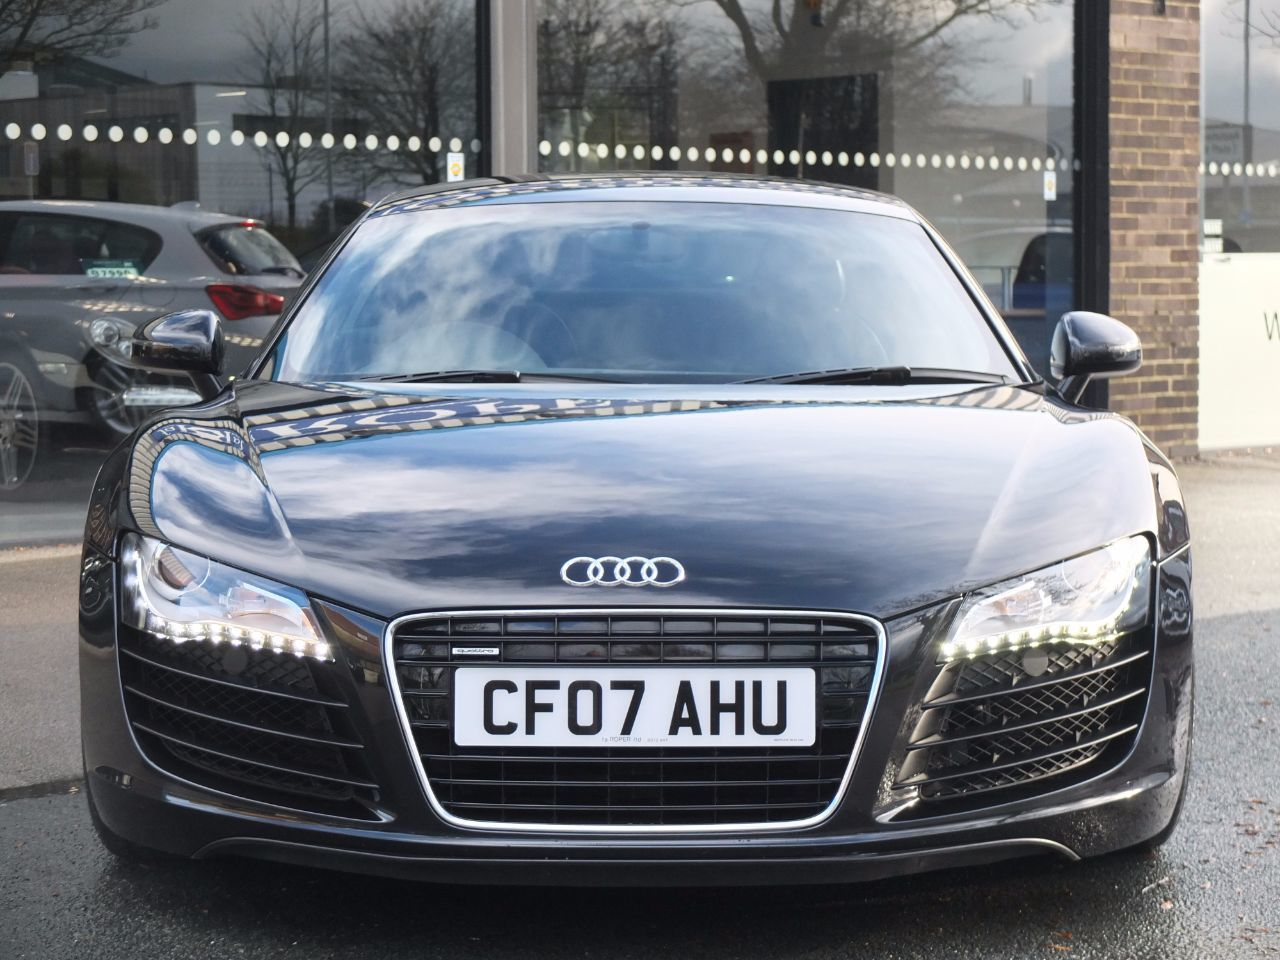 Audi R8 4.2 FSI quattro Coupe Petrol Phantom Black Metallic